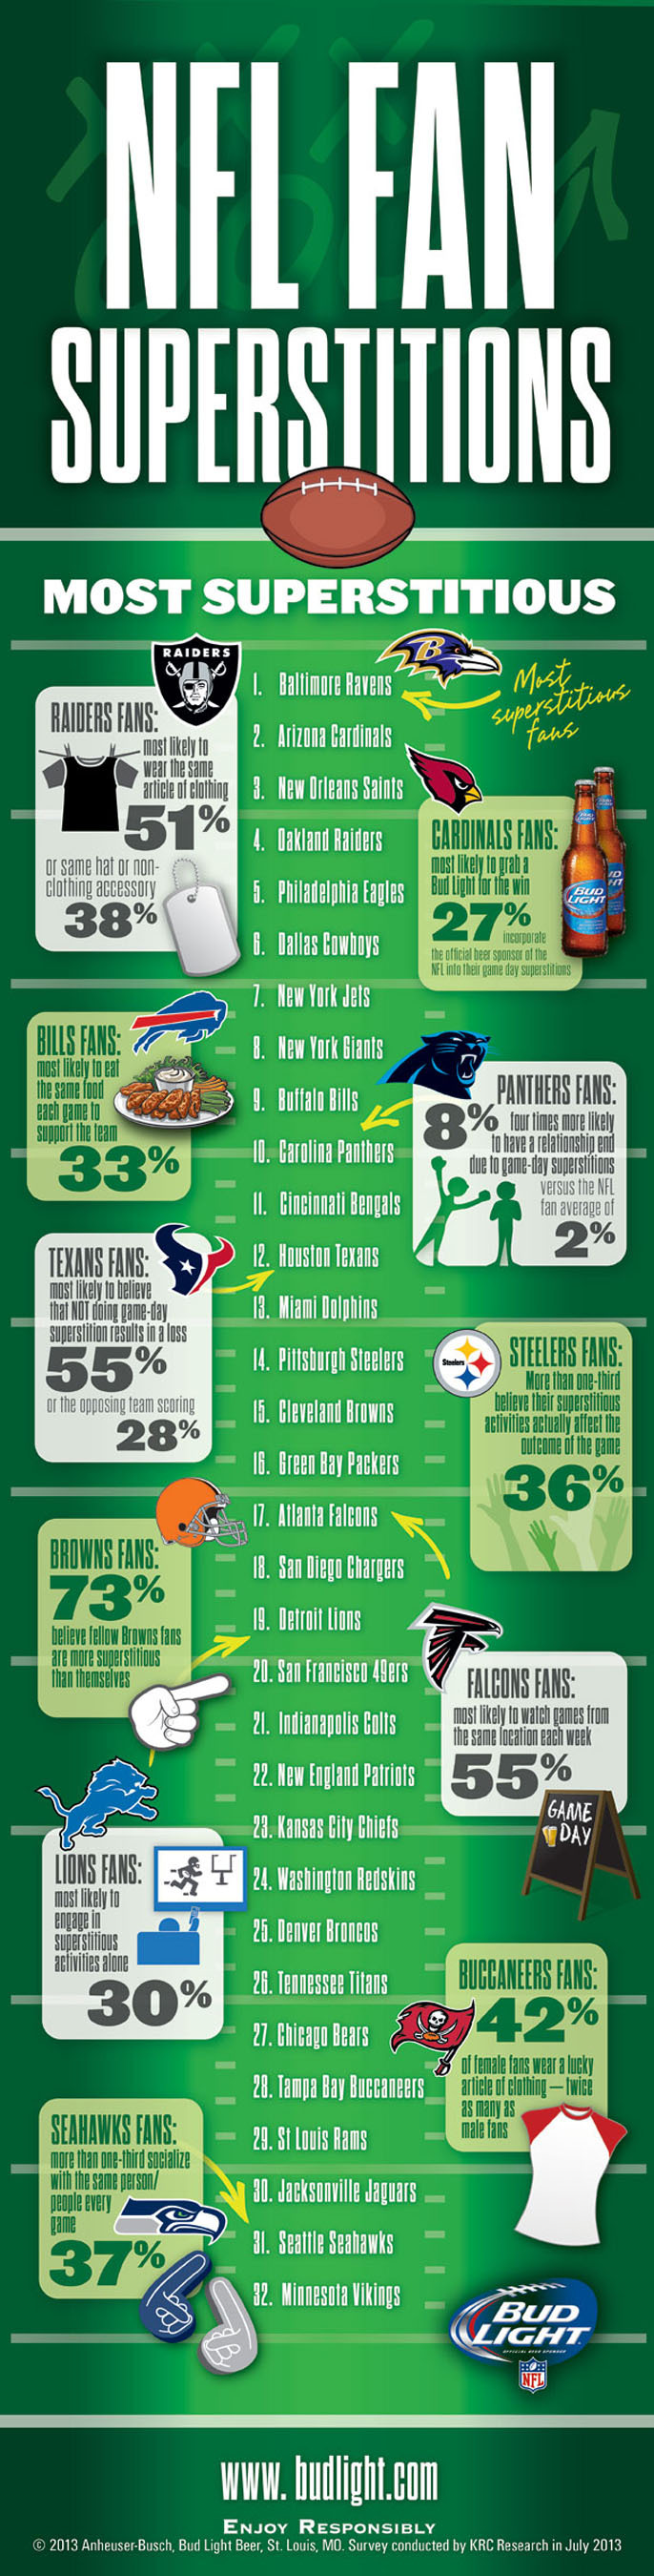 Bud Light Puts the Focus on the Fan with NFL Superstition Survey